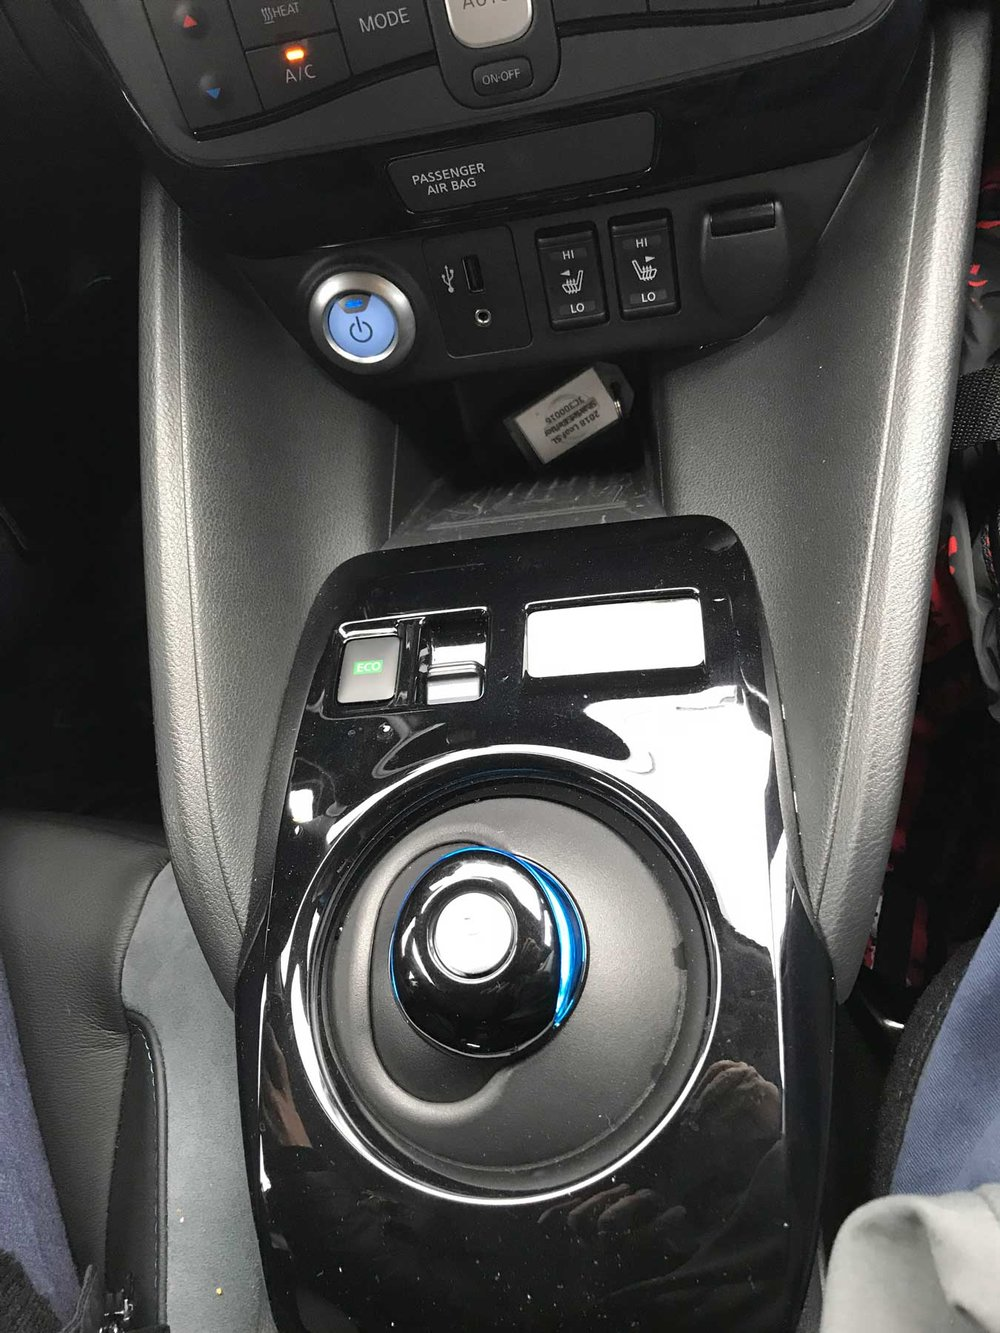 Nissan Leaf controls